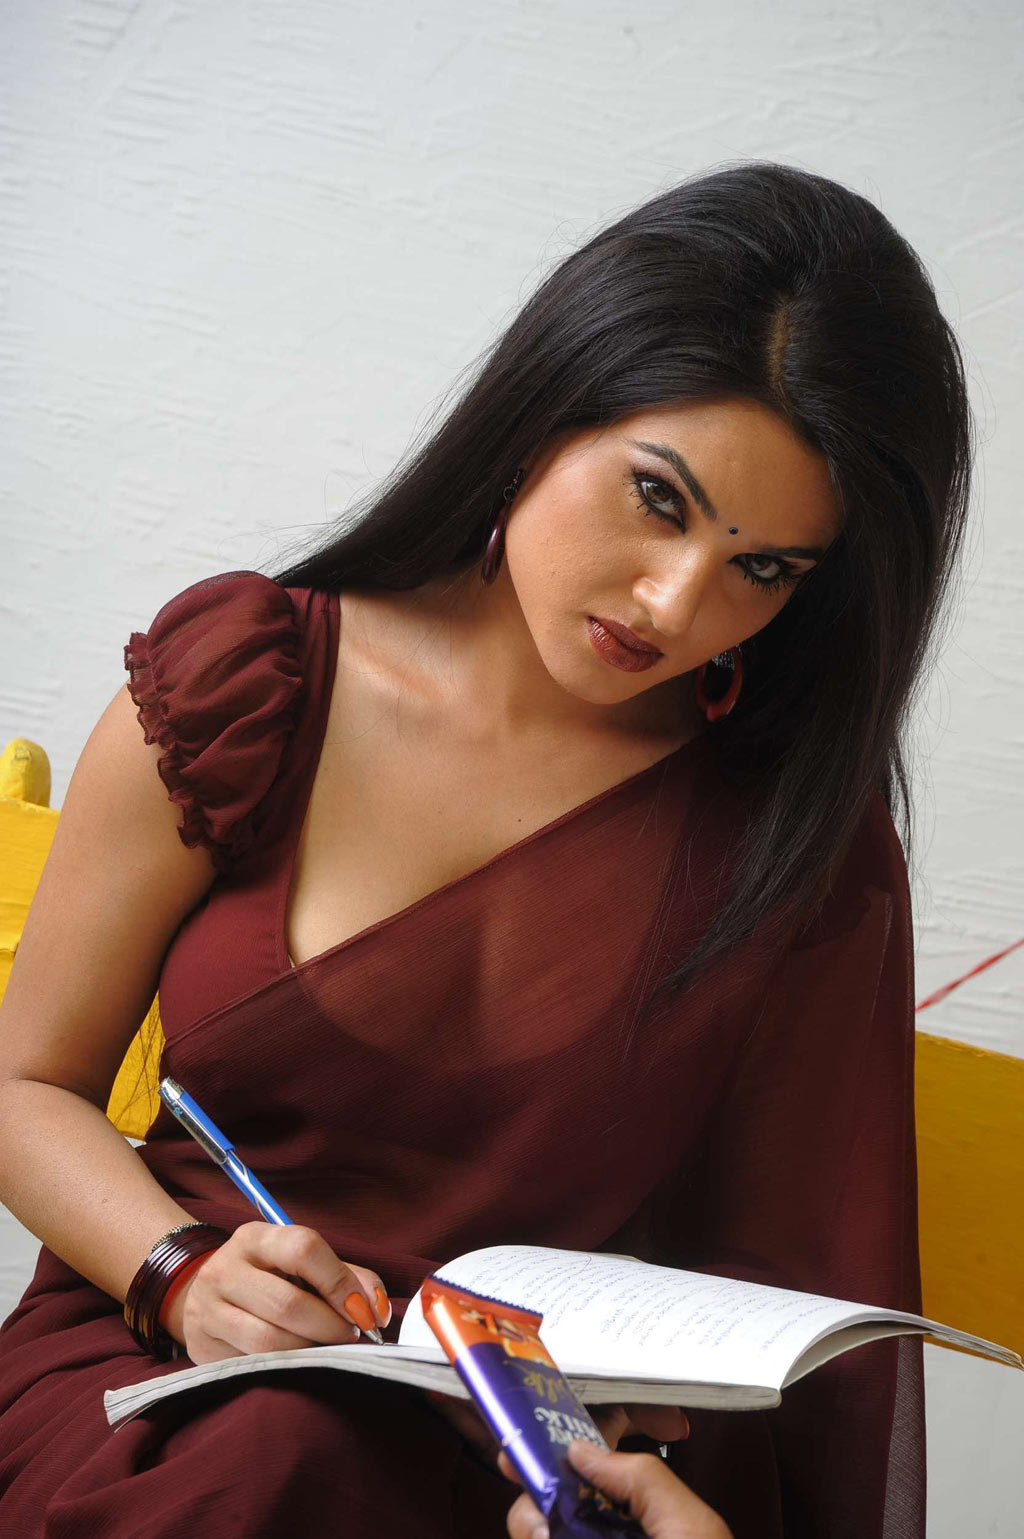 desi-teacher-naked-hot-photo